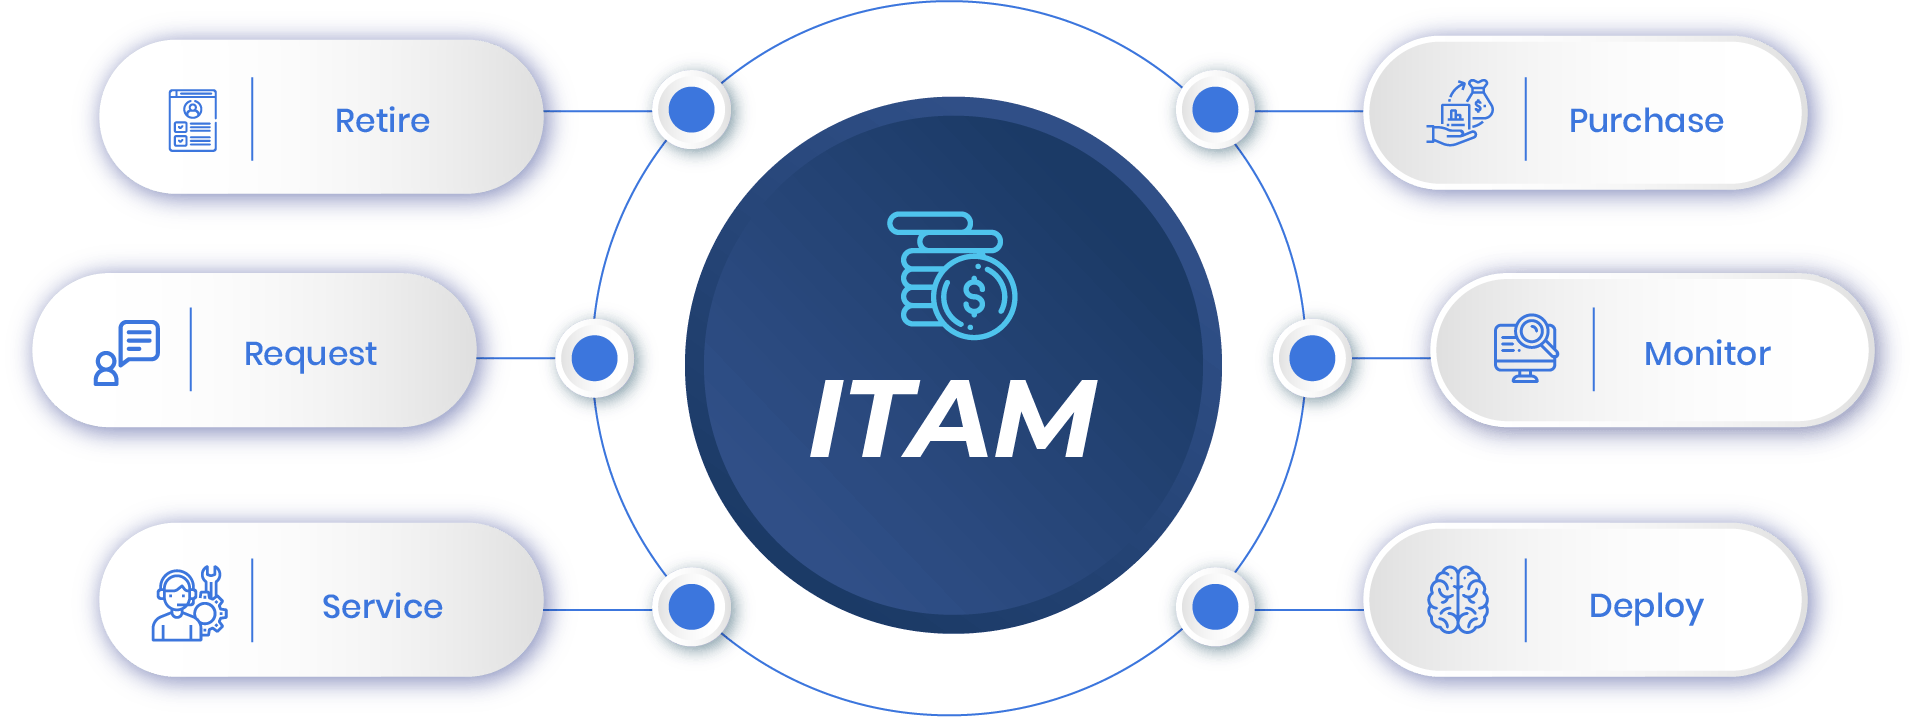 2022 will see an increase in the adoption of ITAM tools